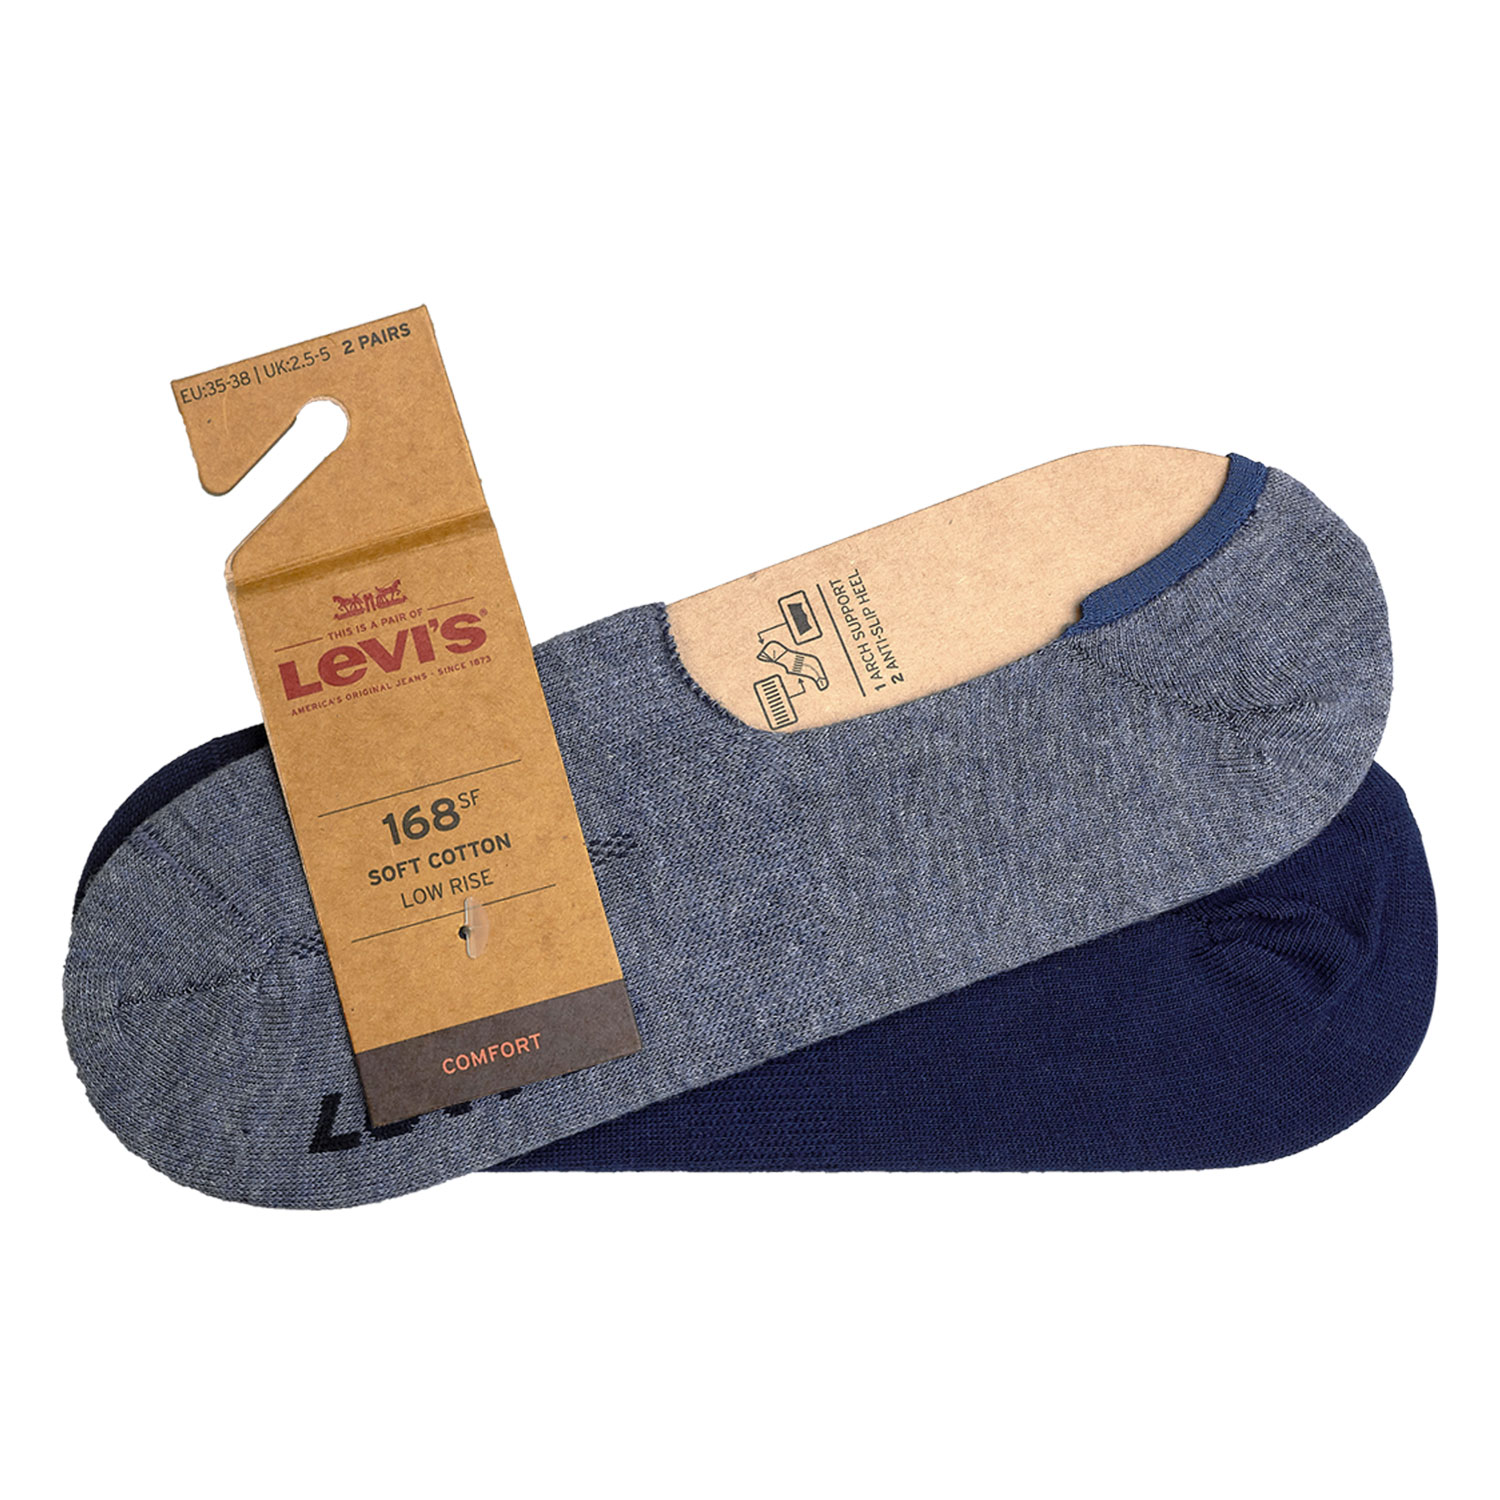 Levi's Füßlinge 10 Paar Low Rise Soft Cotton 943001001 Sneaker Footies Levis – Bild 9